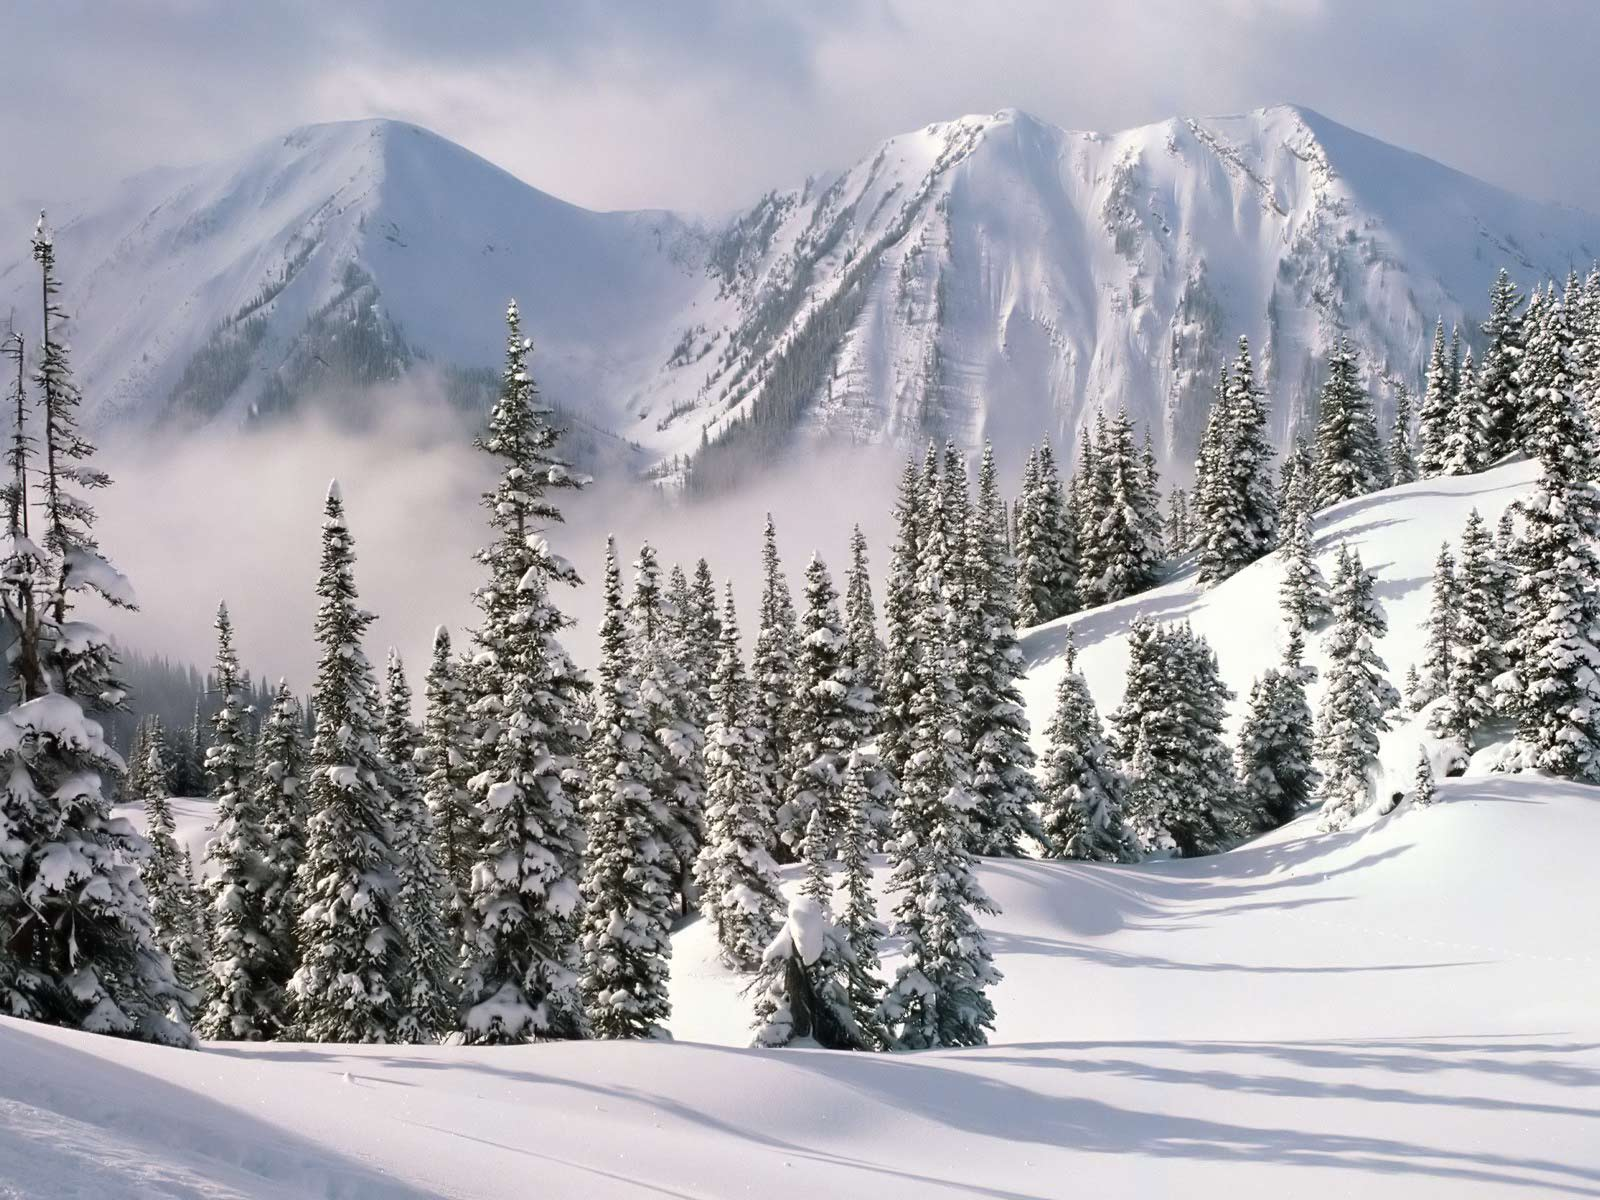 Winter Scene With Snow  87796 HD Wallpaper